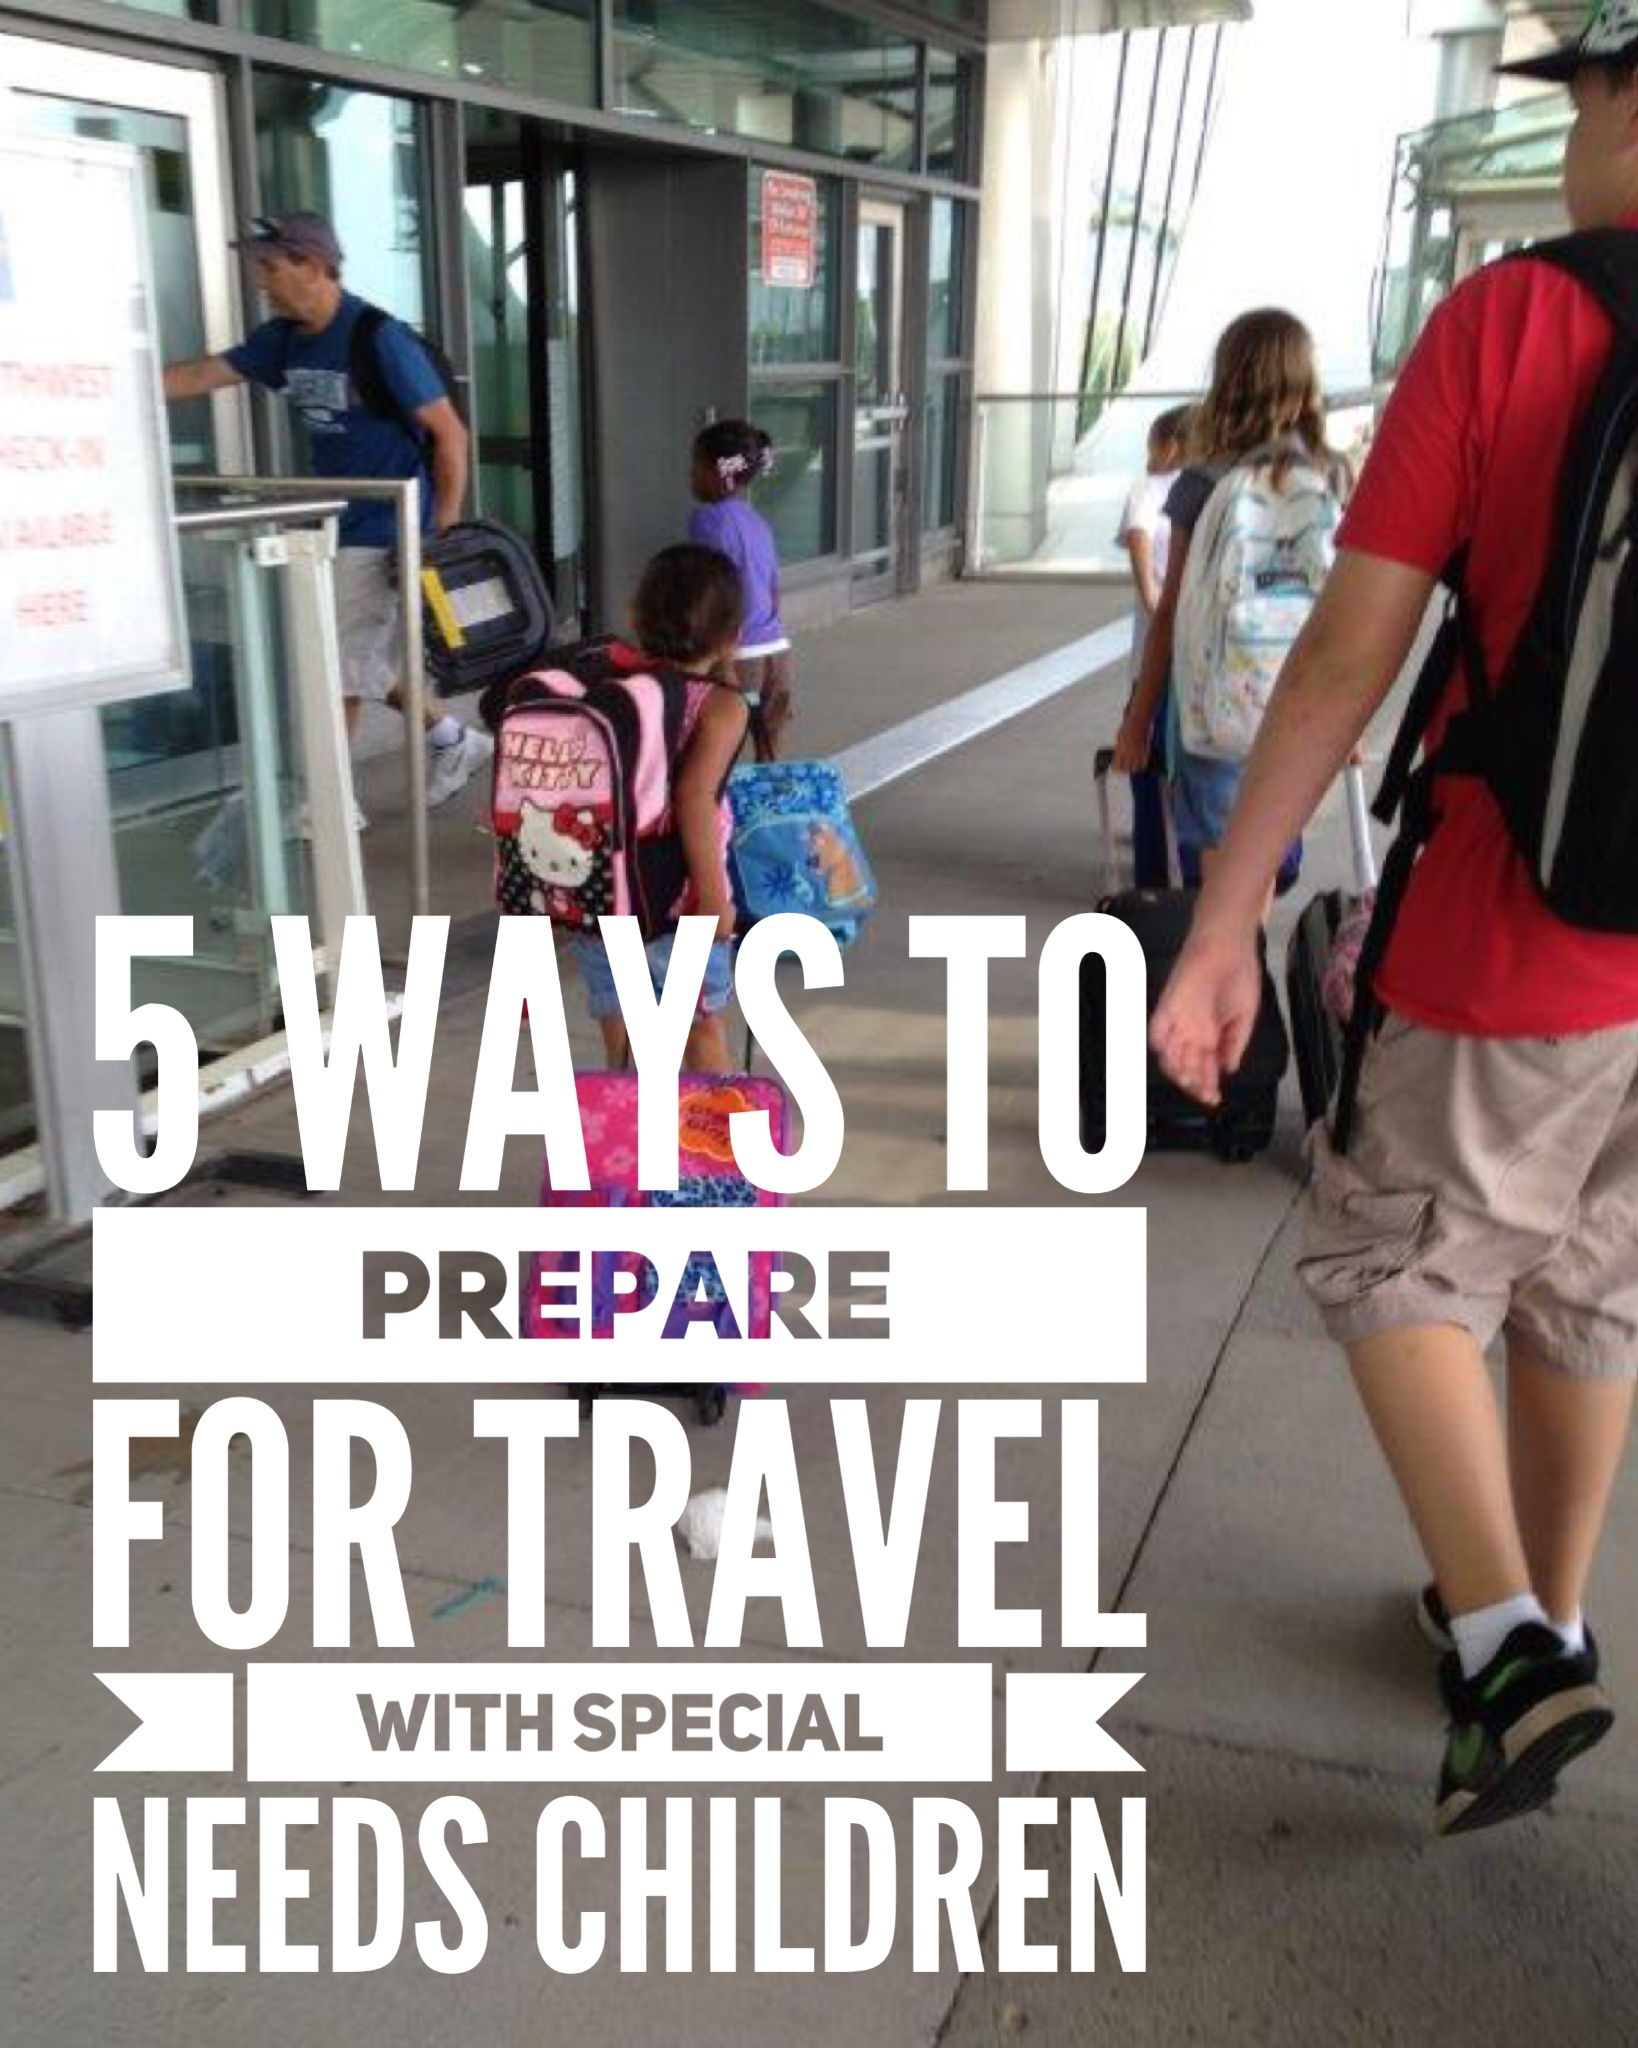 5 Ways to Prepare for Travel with Special Needs Children